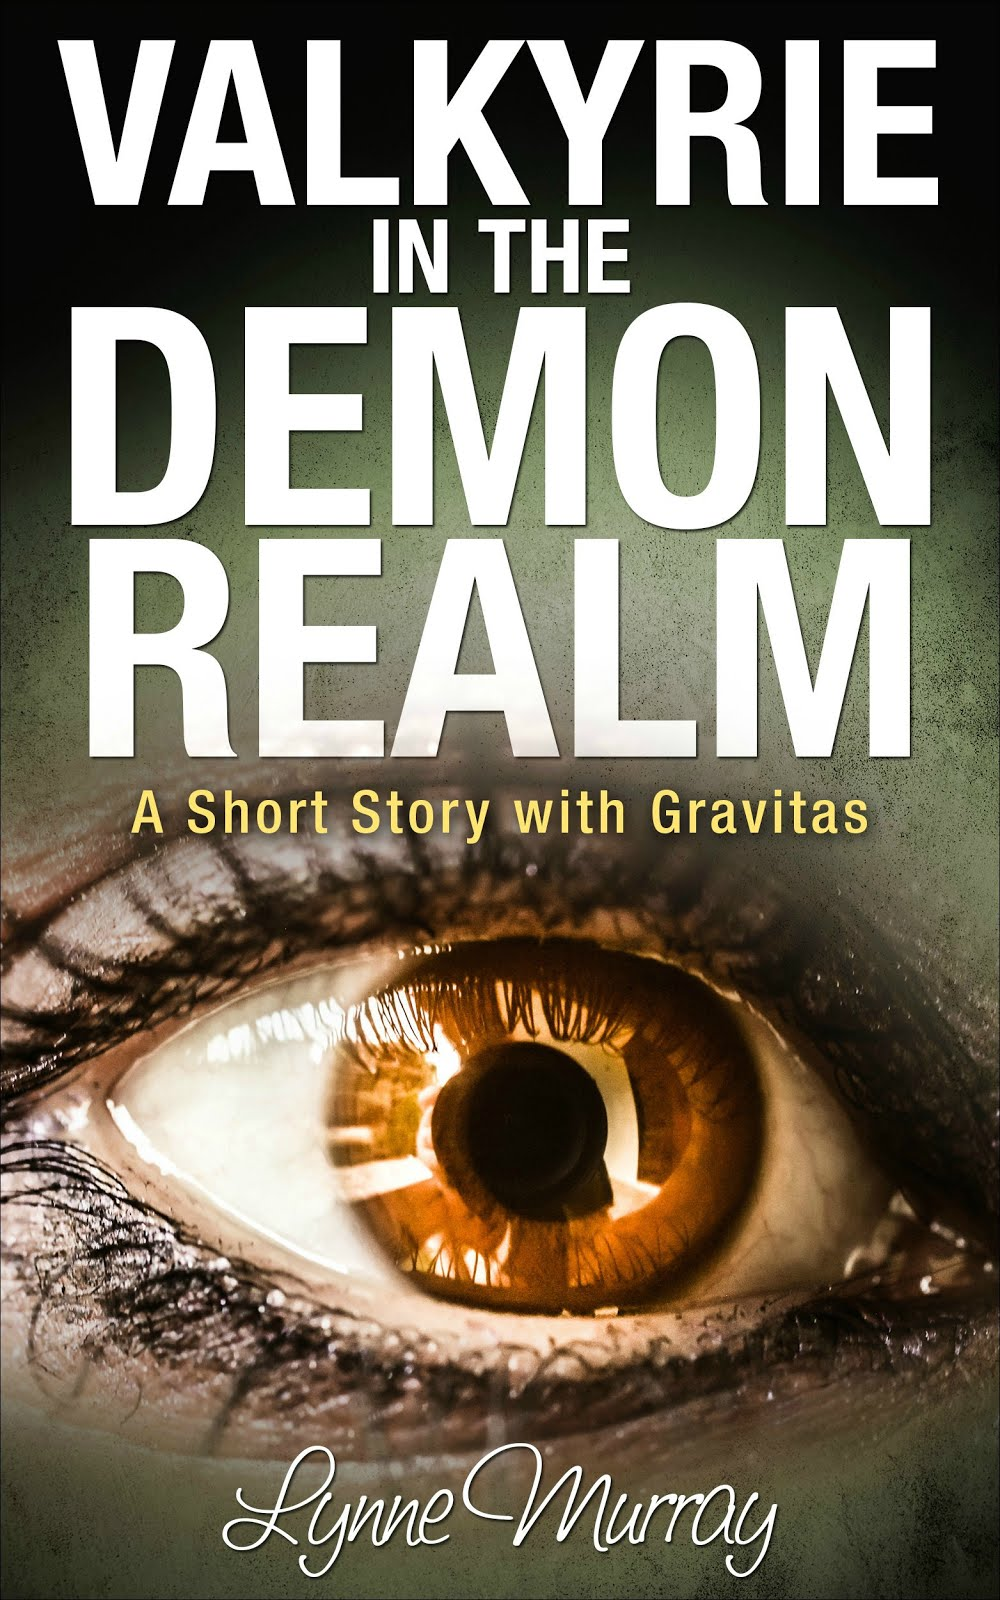 Valkyrie in the Demon Realm: A Short Story with Gravitas (Gravitas Valkyrie Book 2)